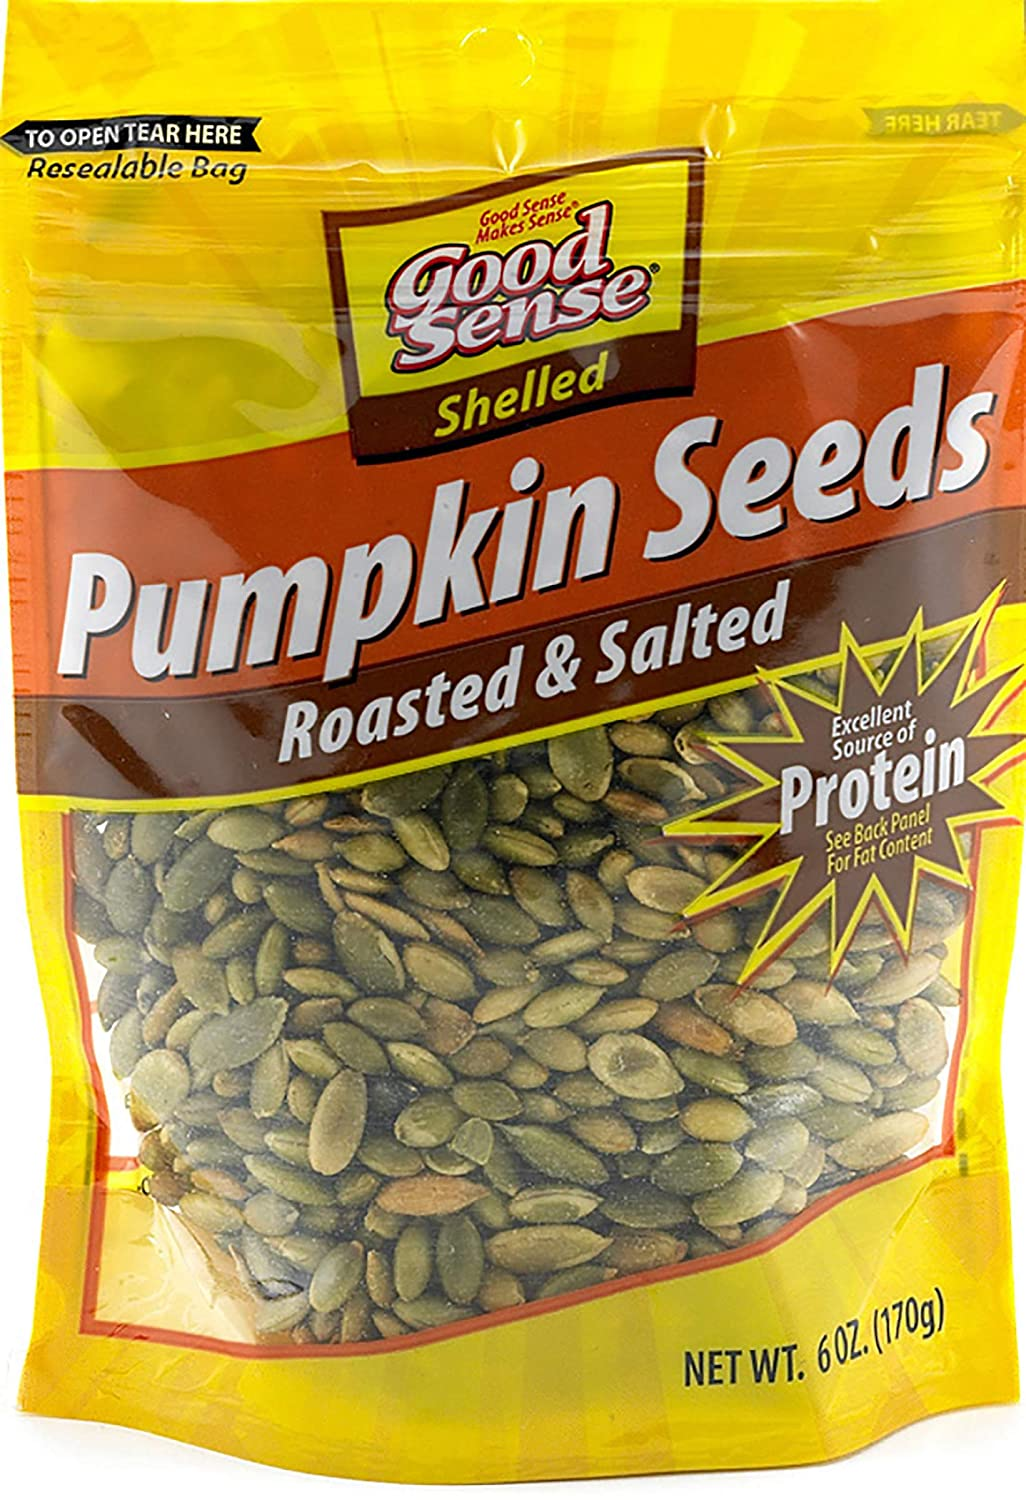 Good Sense Roasted and Salted Shelled Pumpkin Seeds, 72 Ounce (Pack of 12)